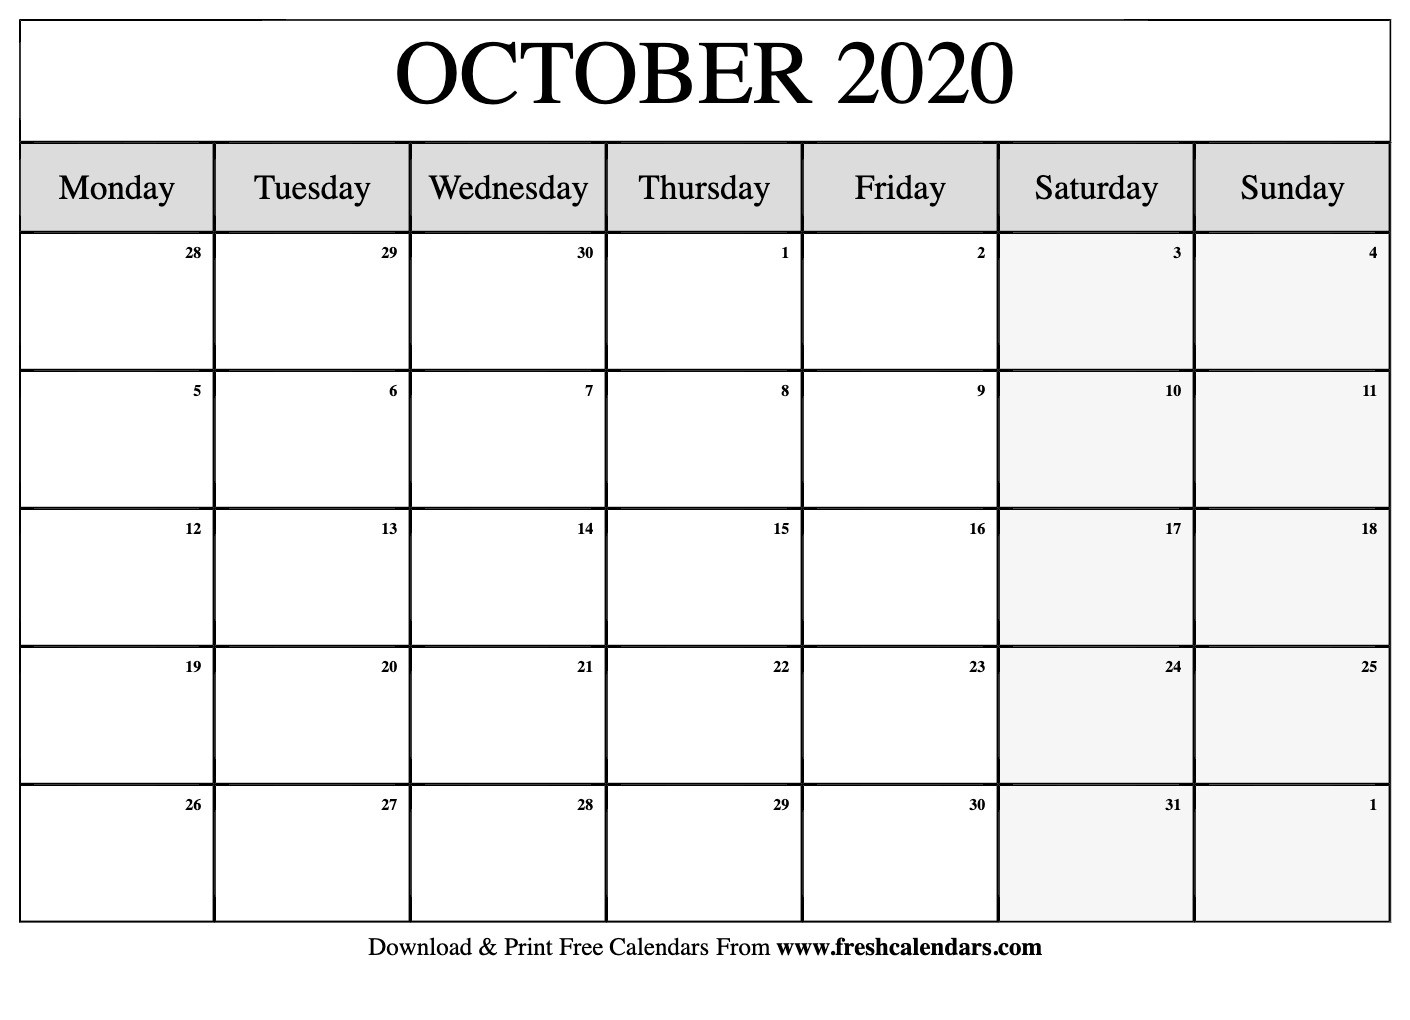 October 2020 Calendar Printable - Fresh Calendars-Printable Calendar 2020 Monthly Monday Start